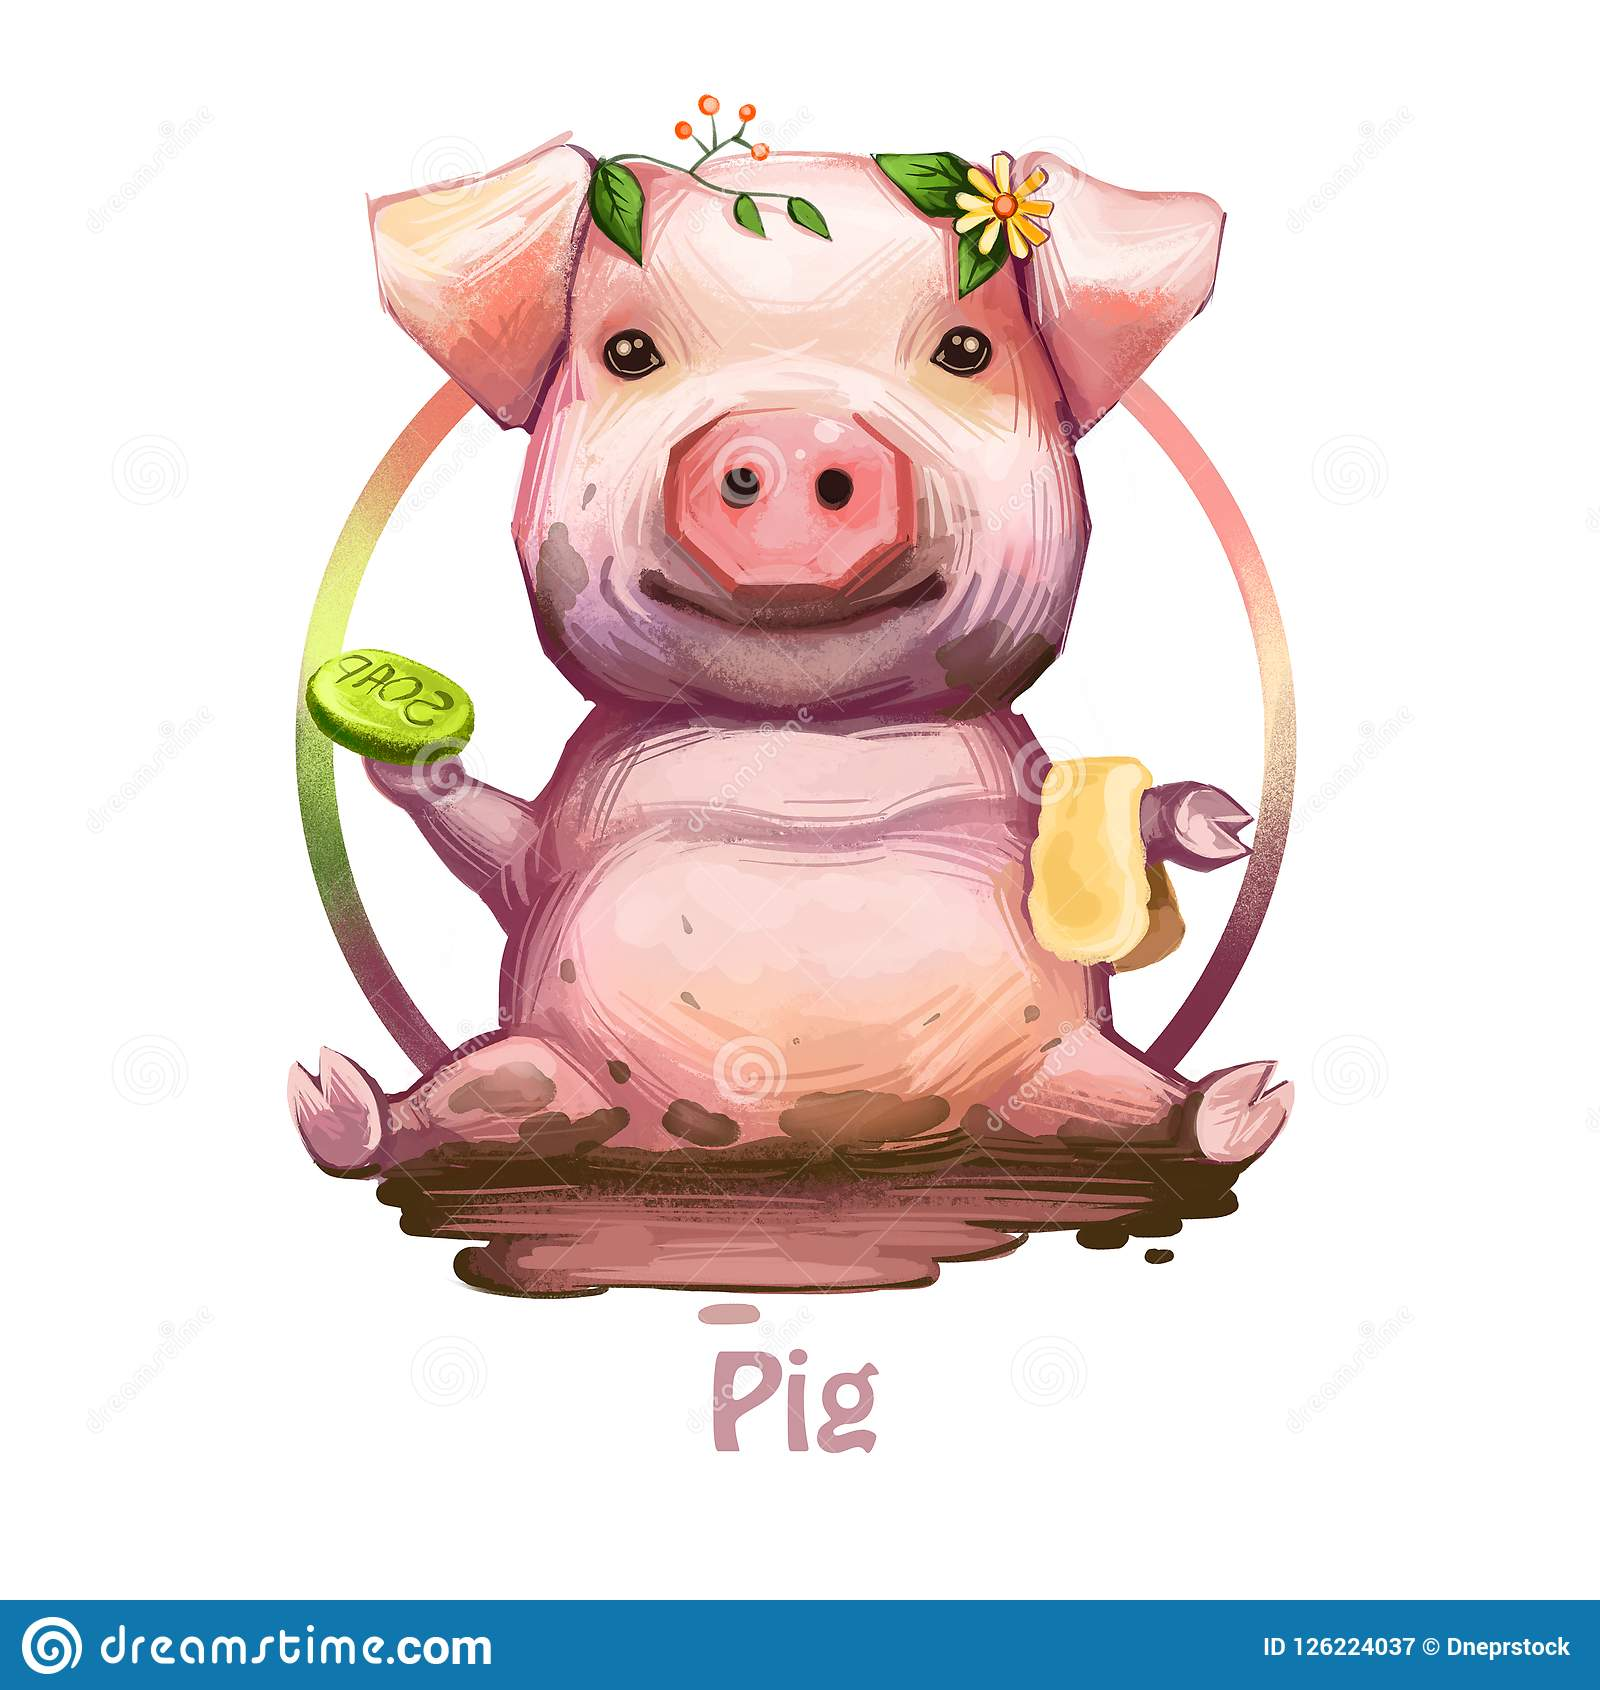 Pig with positive emotions holding soap and sponge digital art. Isolated icon of swine sitting in dirt, wearing plants